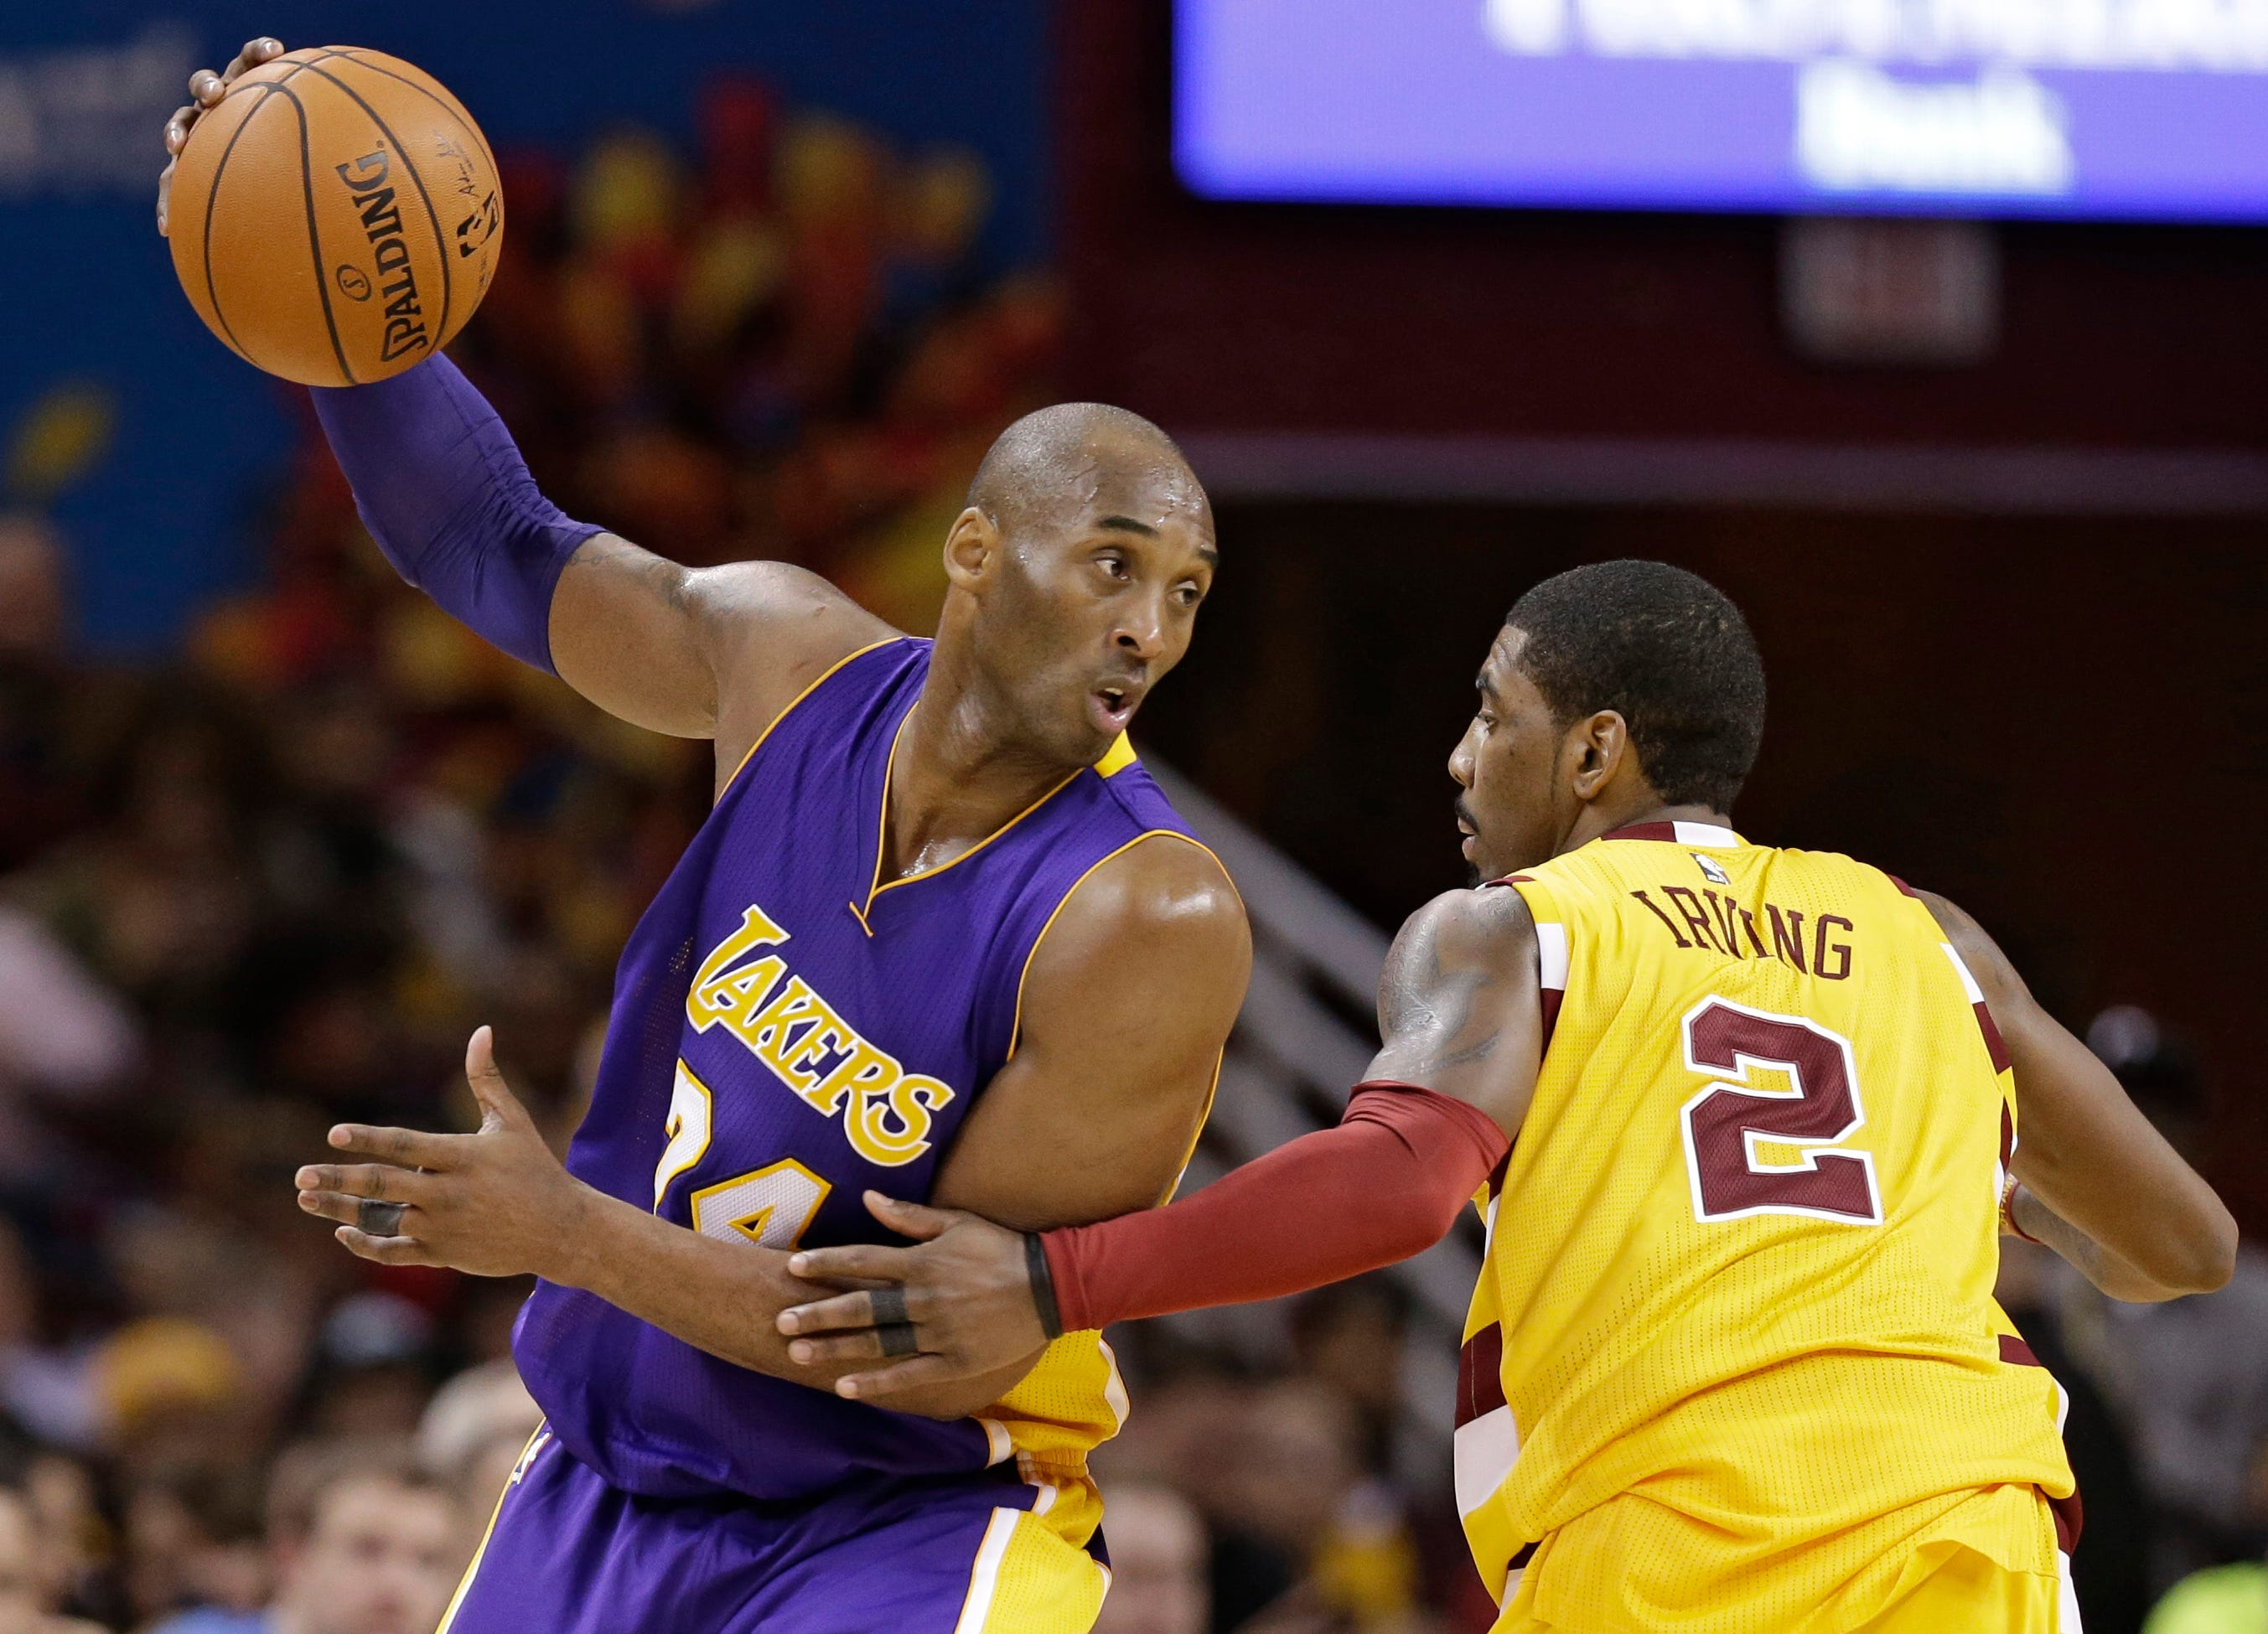 Kyrie Irving wants NBA to honor Kobe Bryant with new logo, which Vanessa Bryant approves